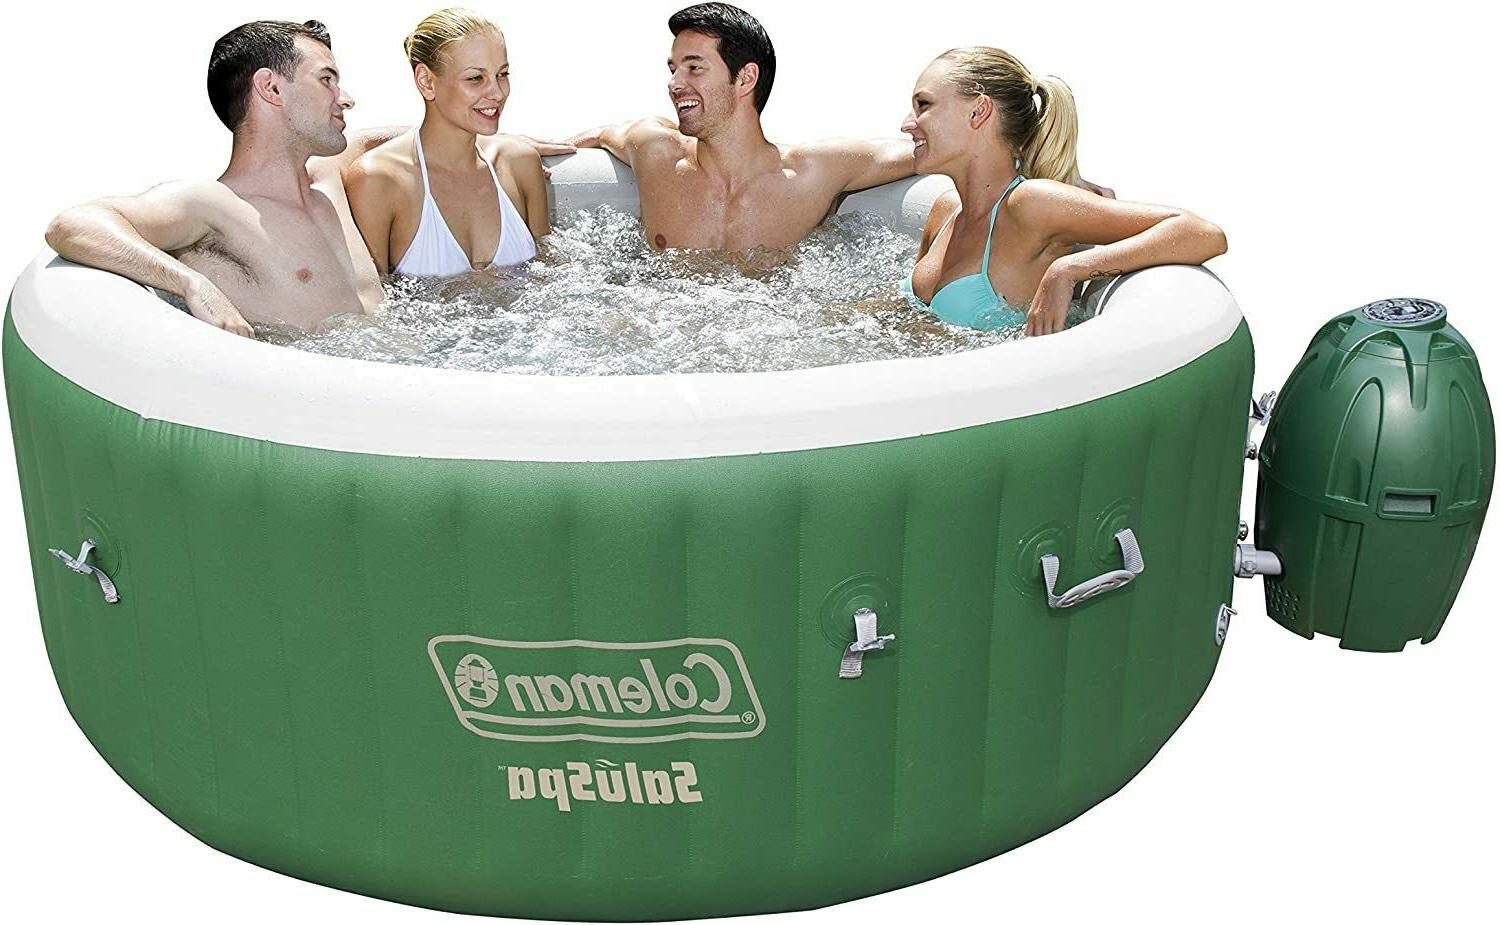 *New* Coleman SaluSpa Inflatable Hot Tub Spa Green & White 4